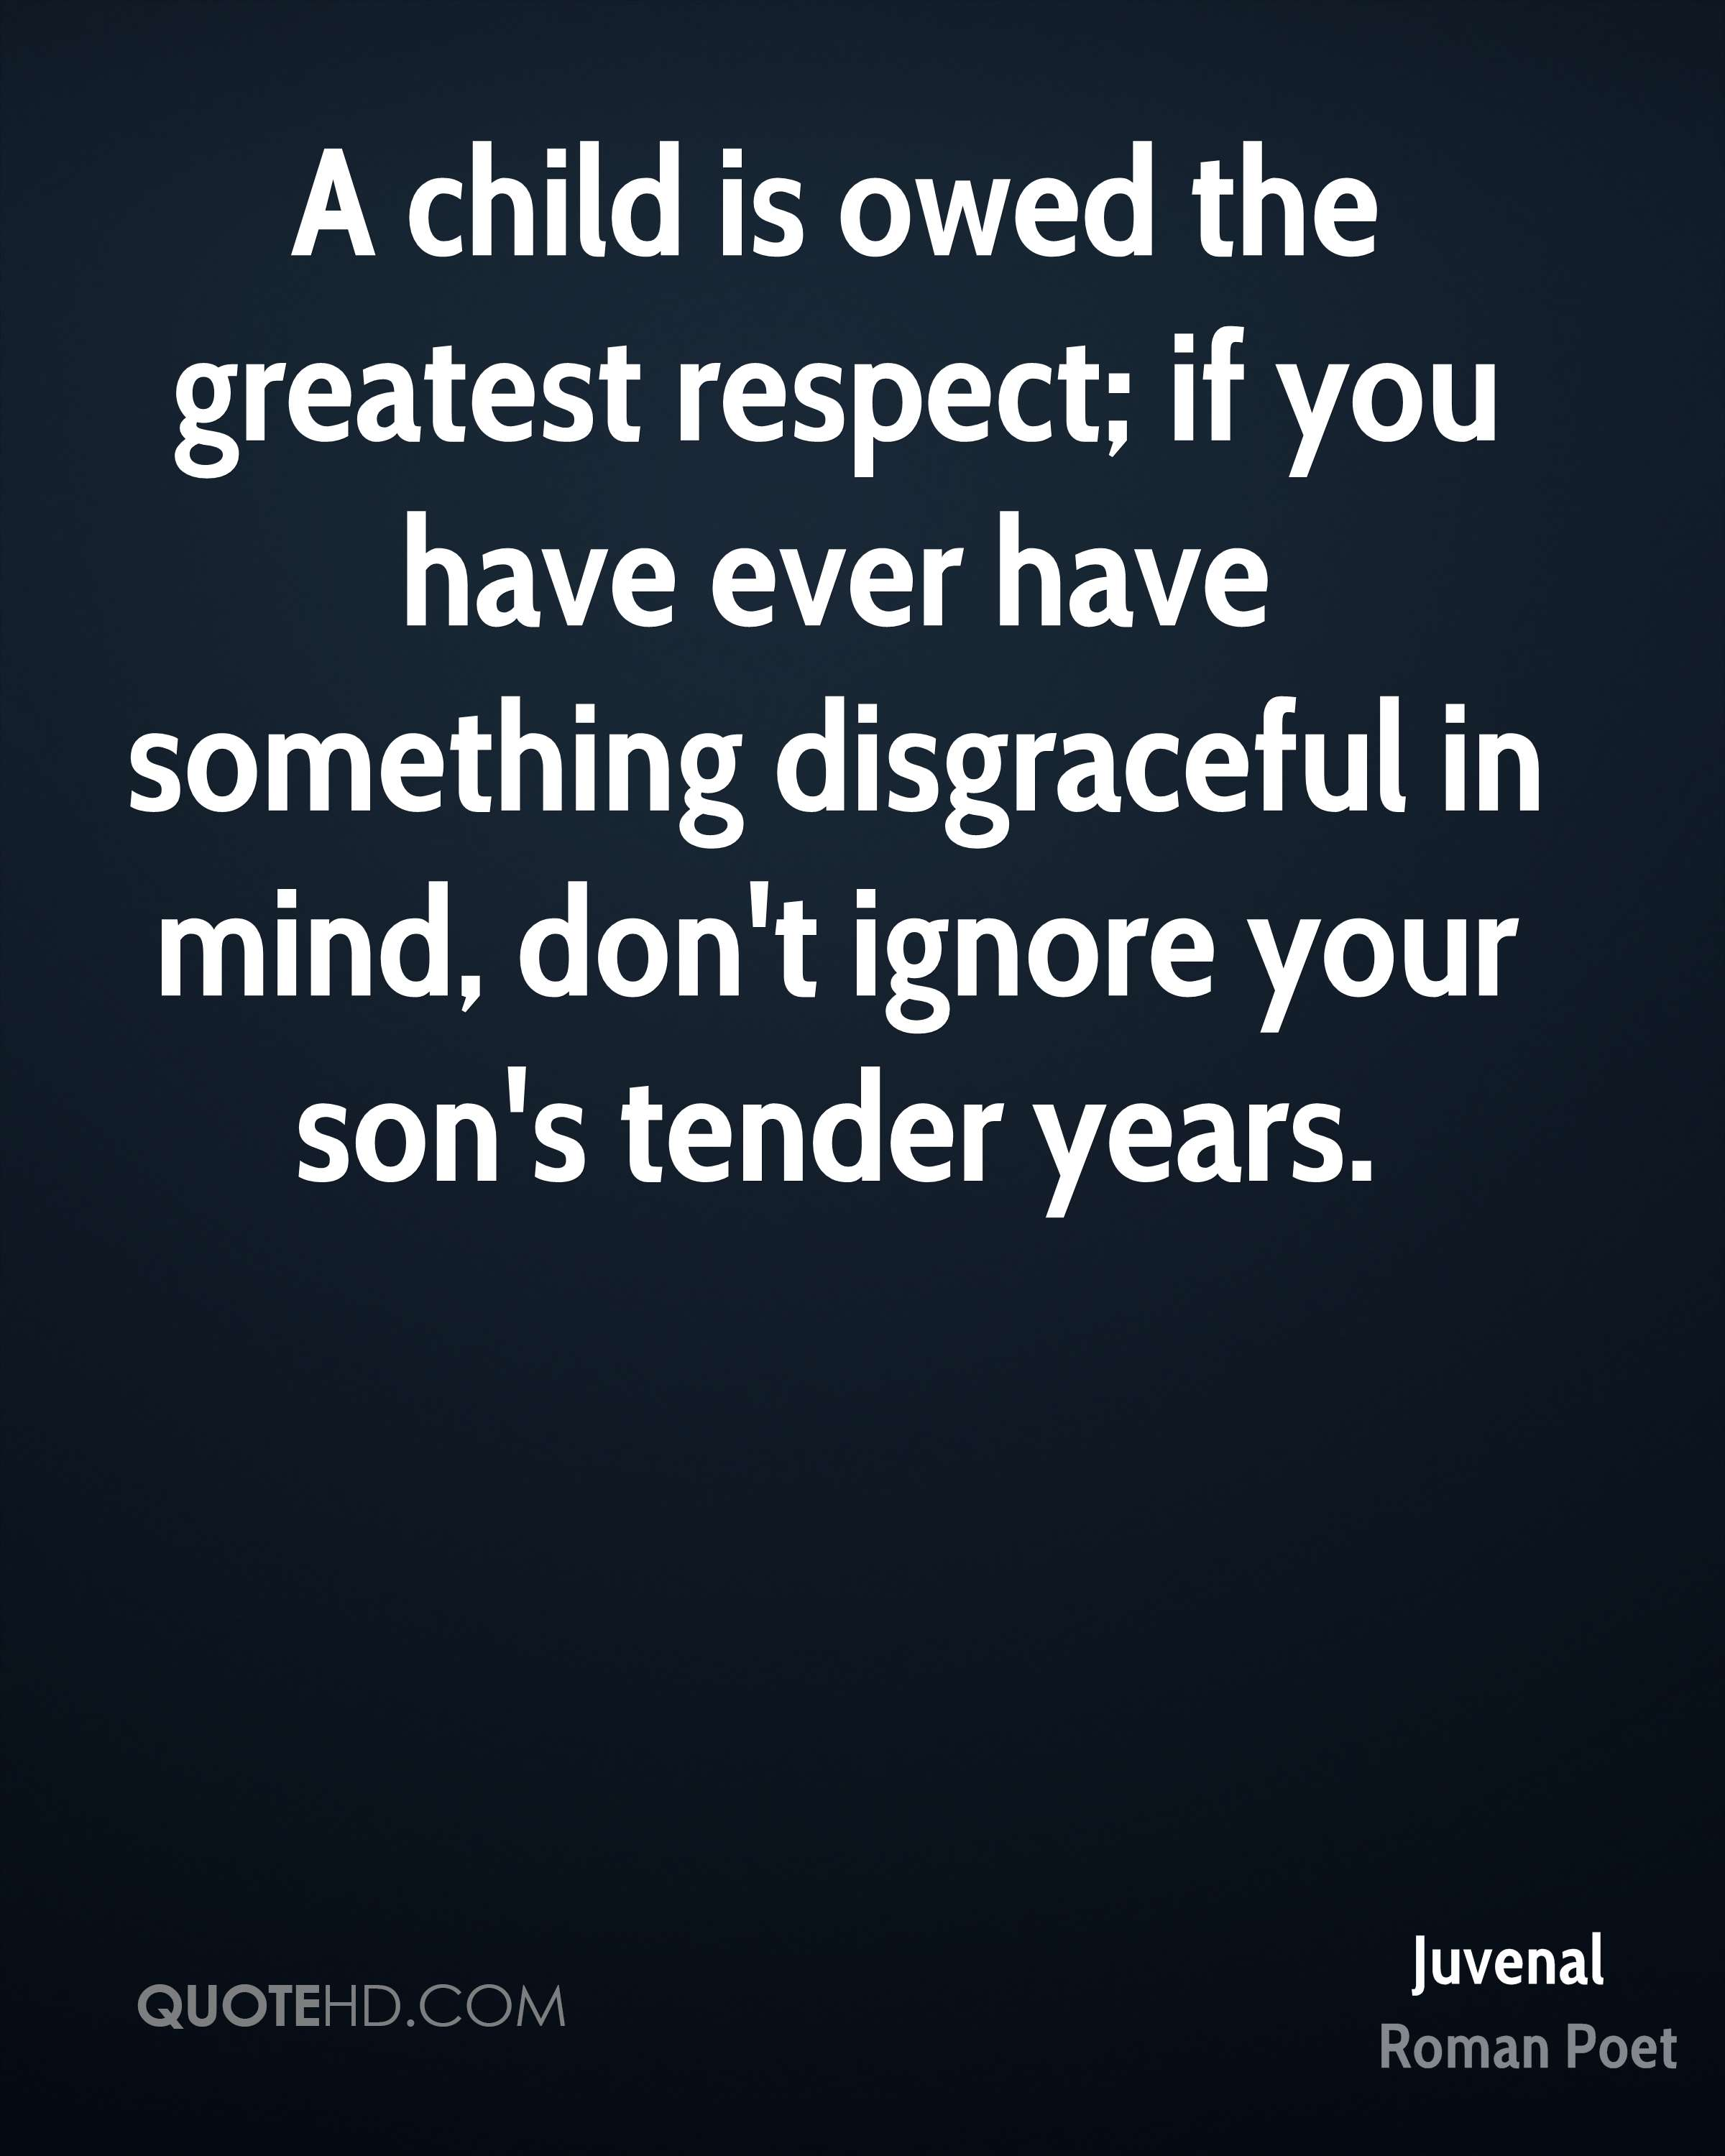 A child is owed the greatest respect; if you have ever have something disgraceful in mind, don't ignore your son's tender years.